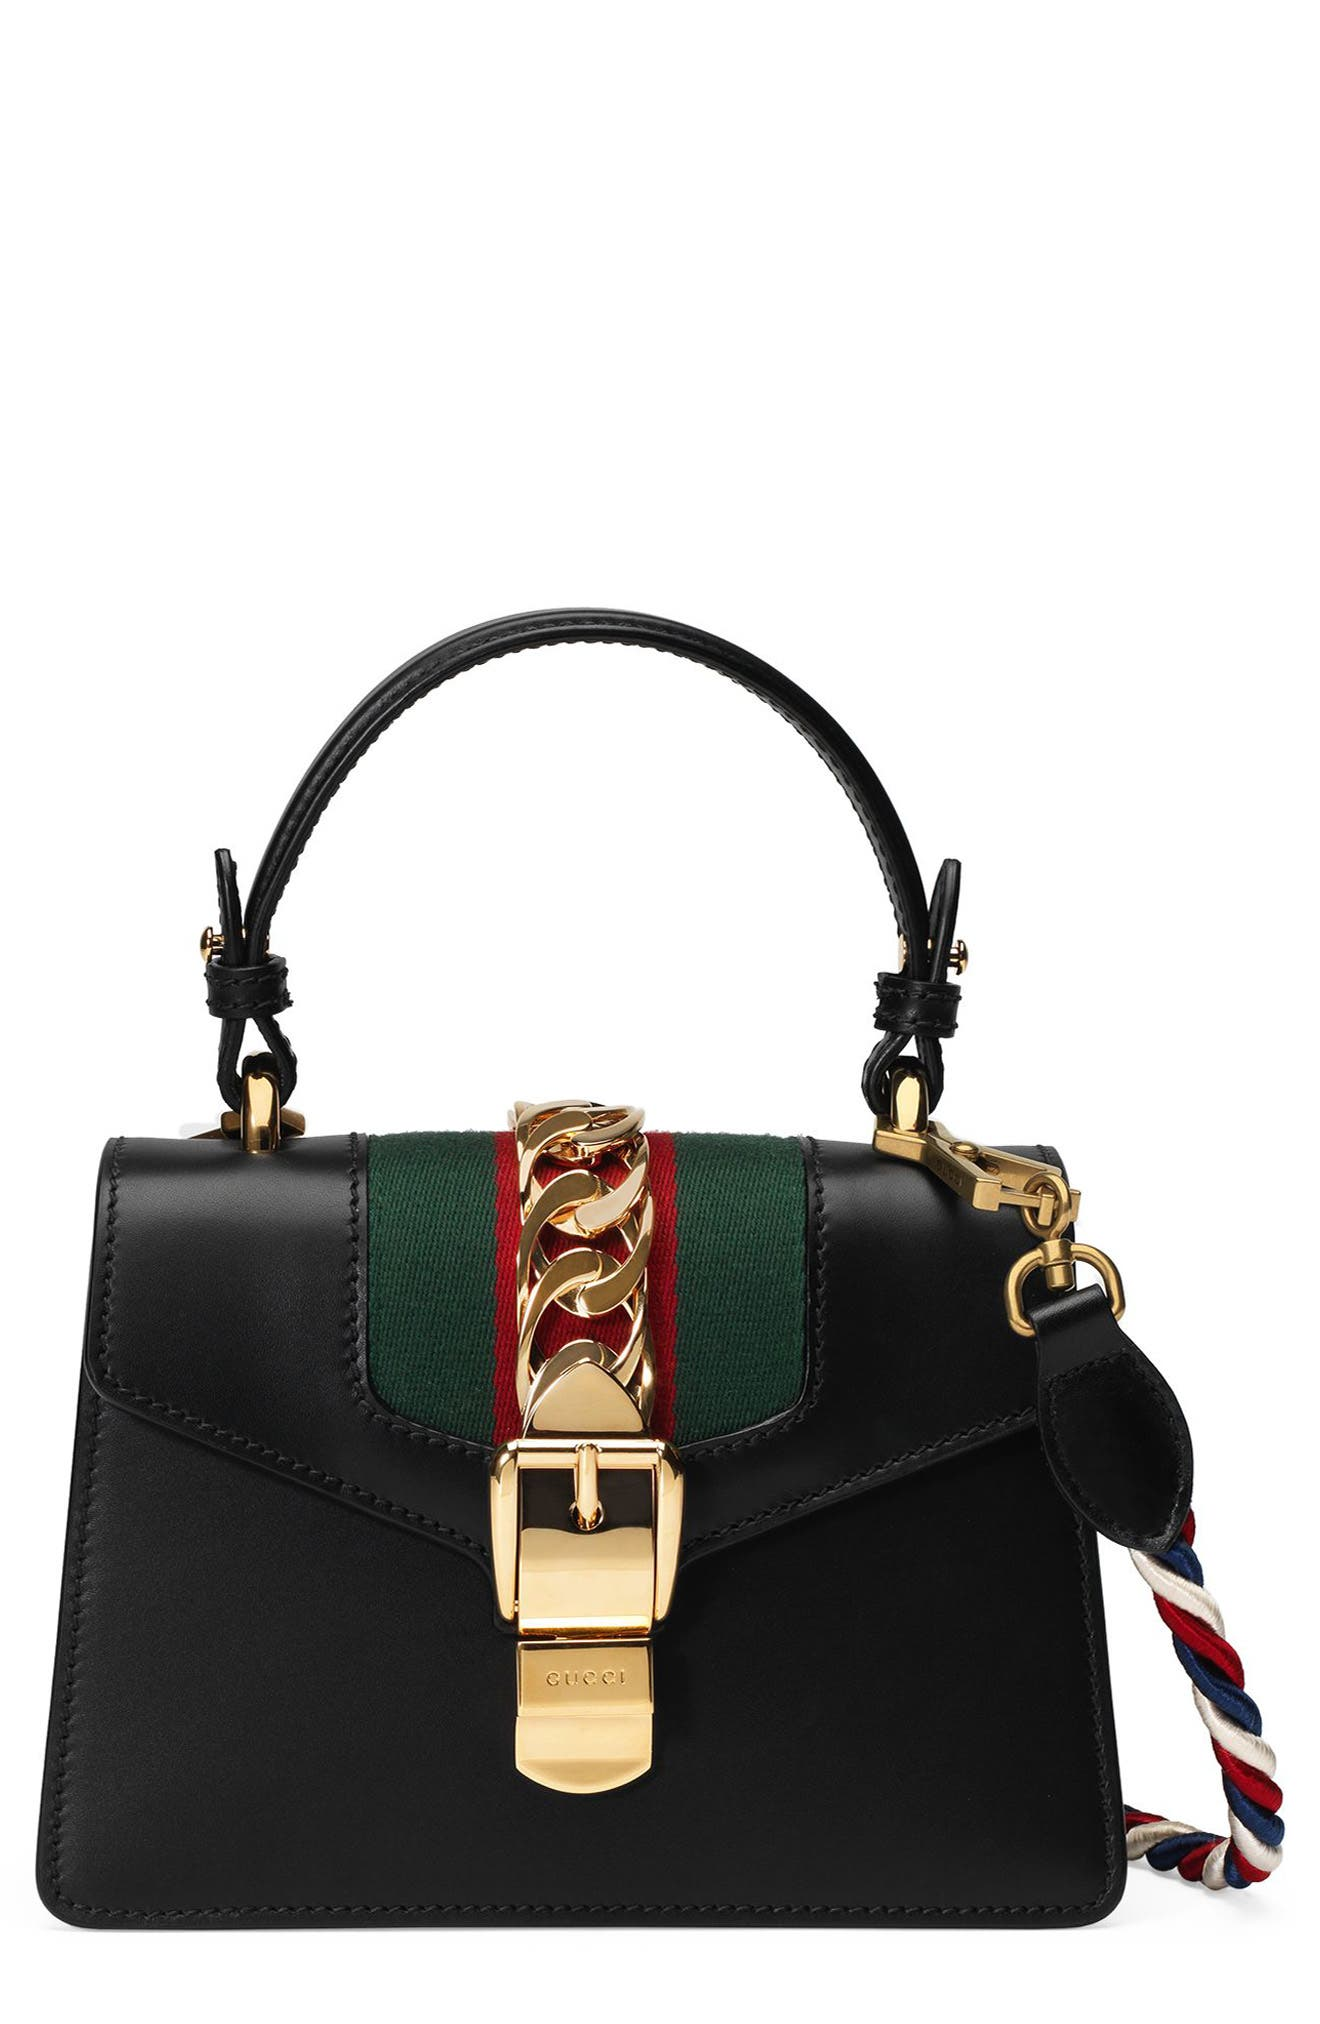 Alternate Image 1 Selected - Gucci Mini Sylvie Top Handle Leather Shoulder Bag